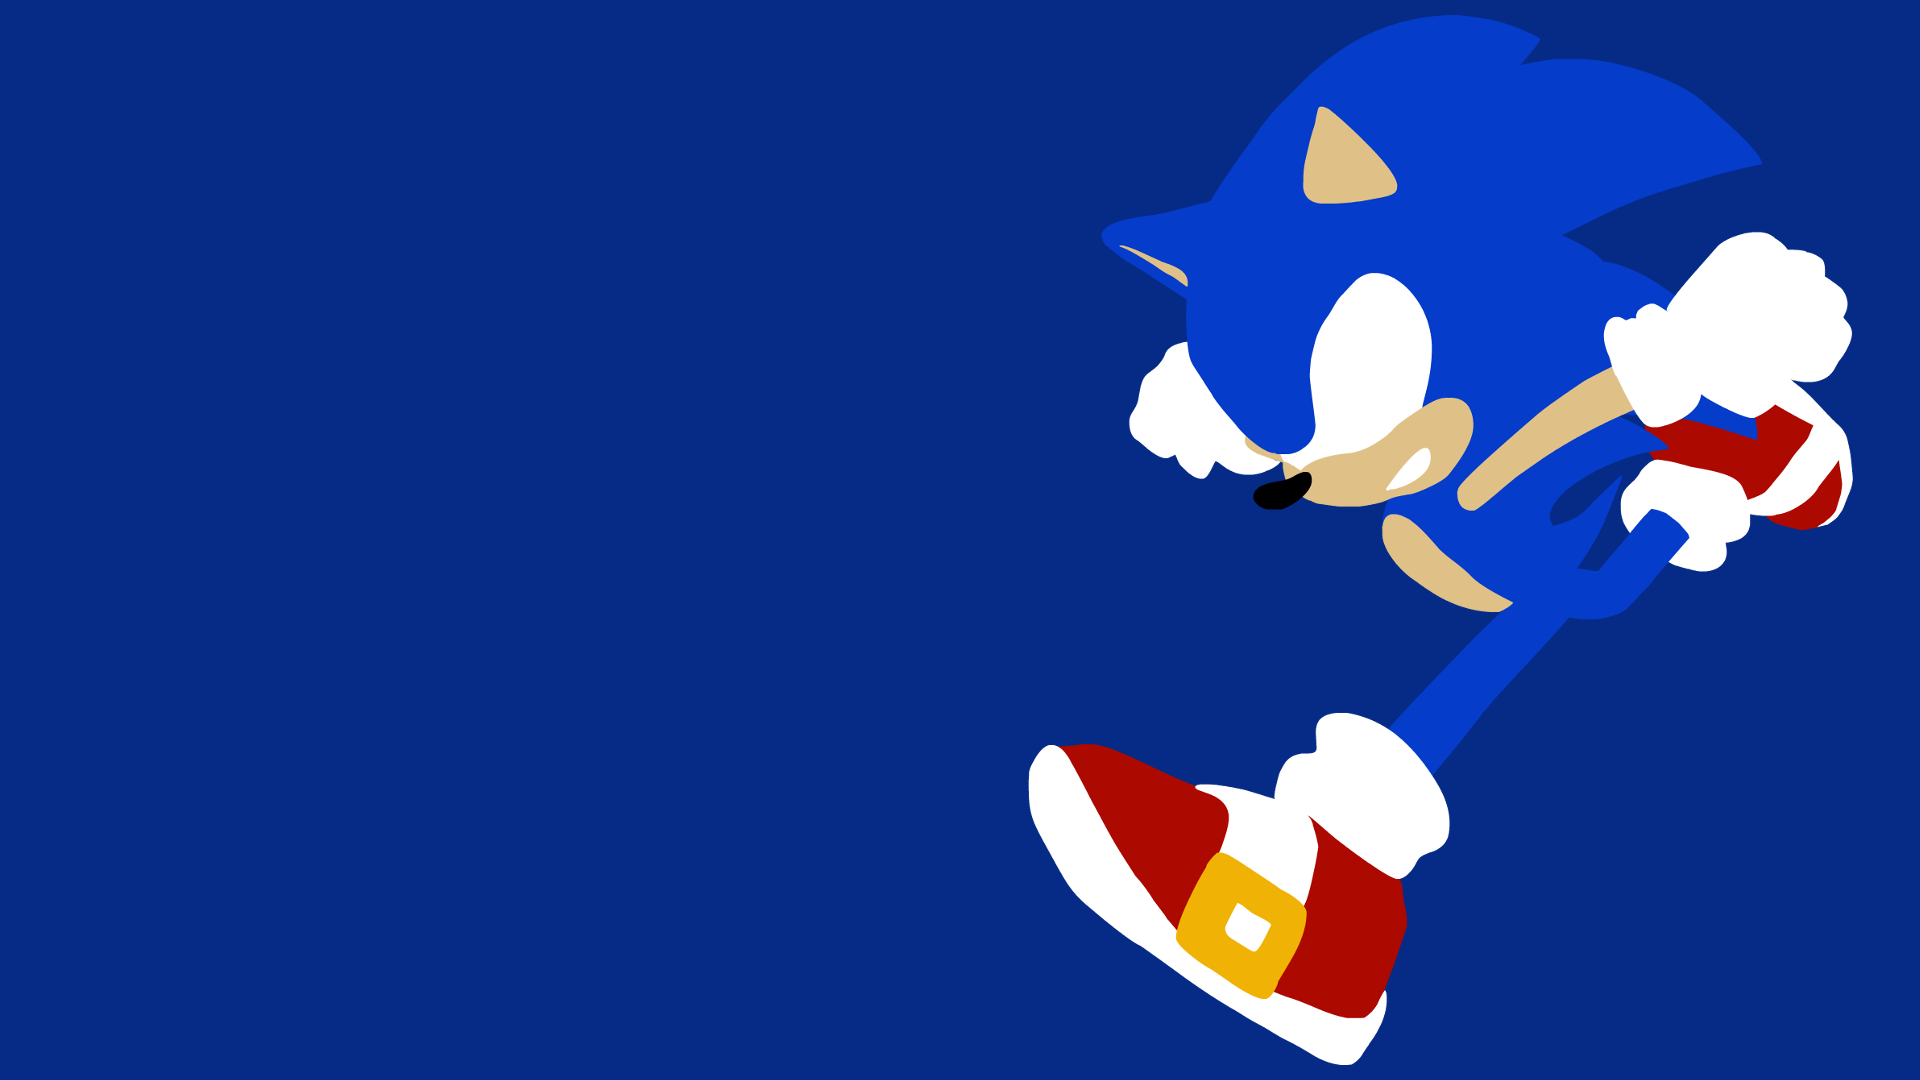 Free Vector Wallpaper Sonic The Hedgehog By Crestie On Deviantart